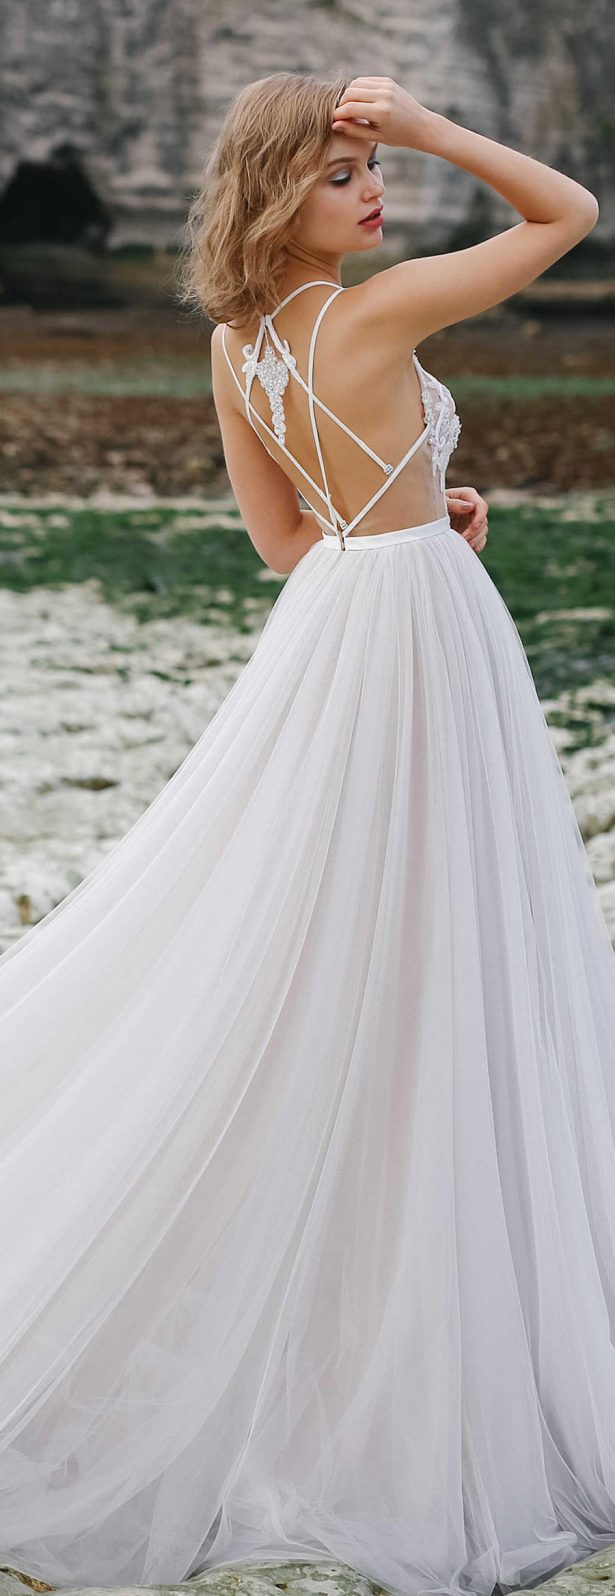 20 fabulous wedding dresses you can buy on etsy belle for Best etsy wedding dress shops